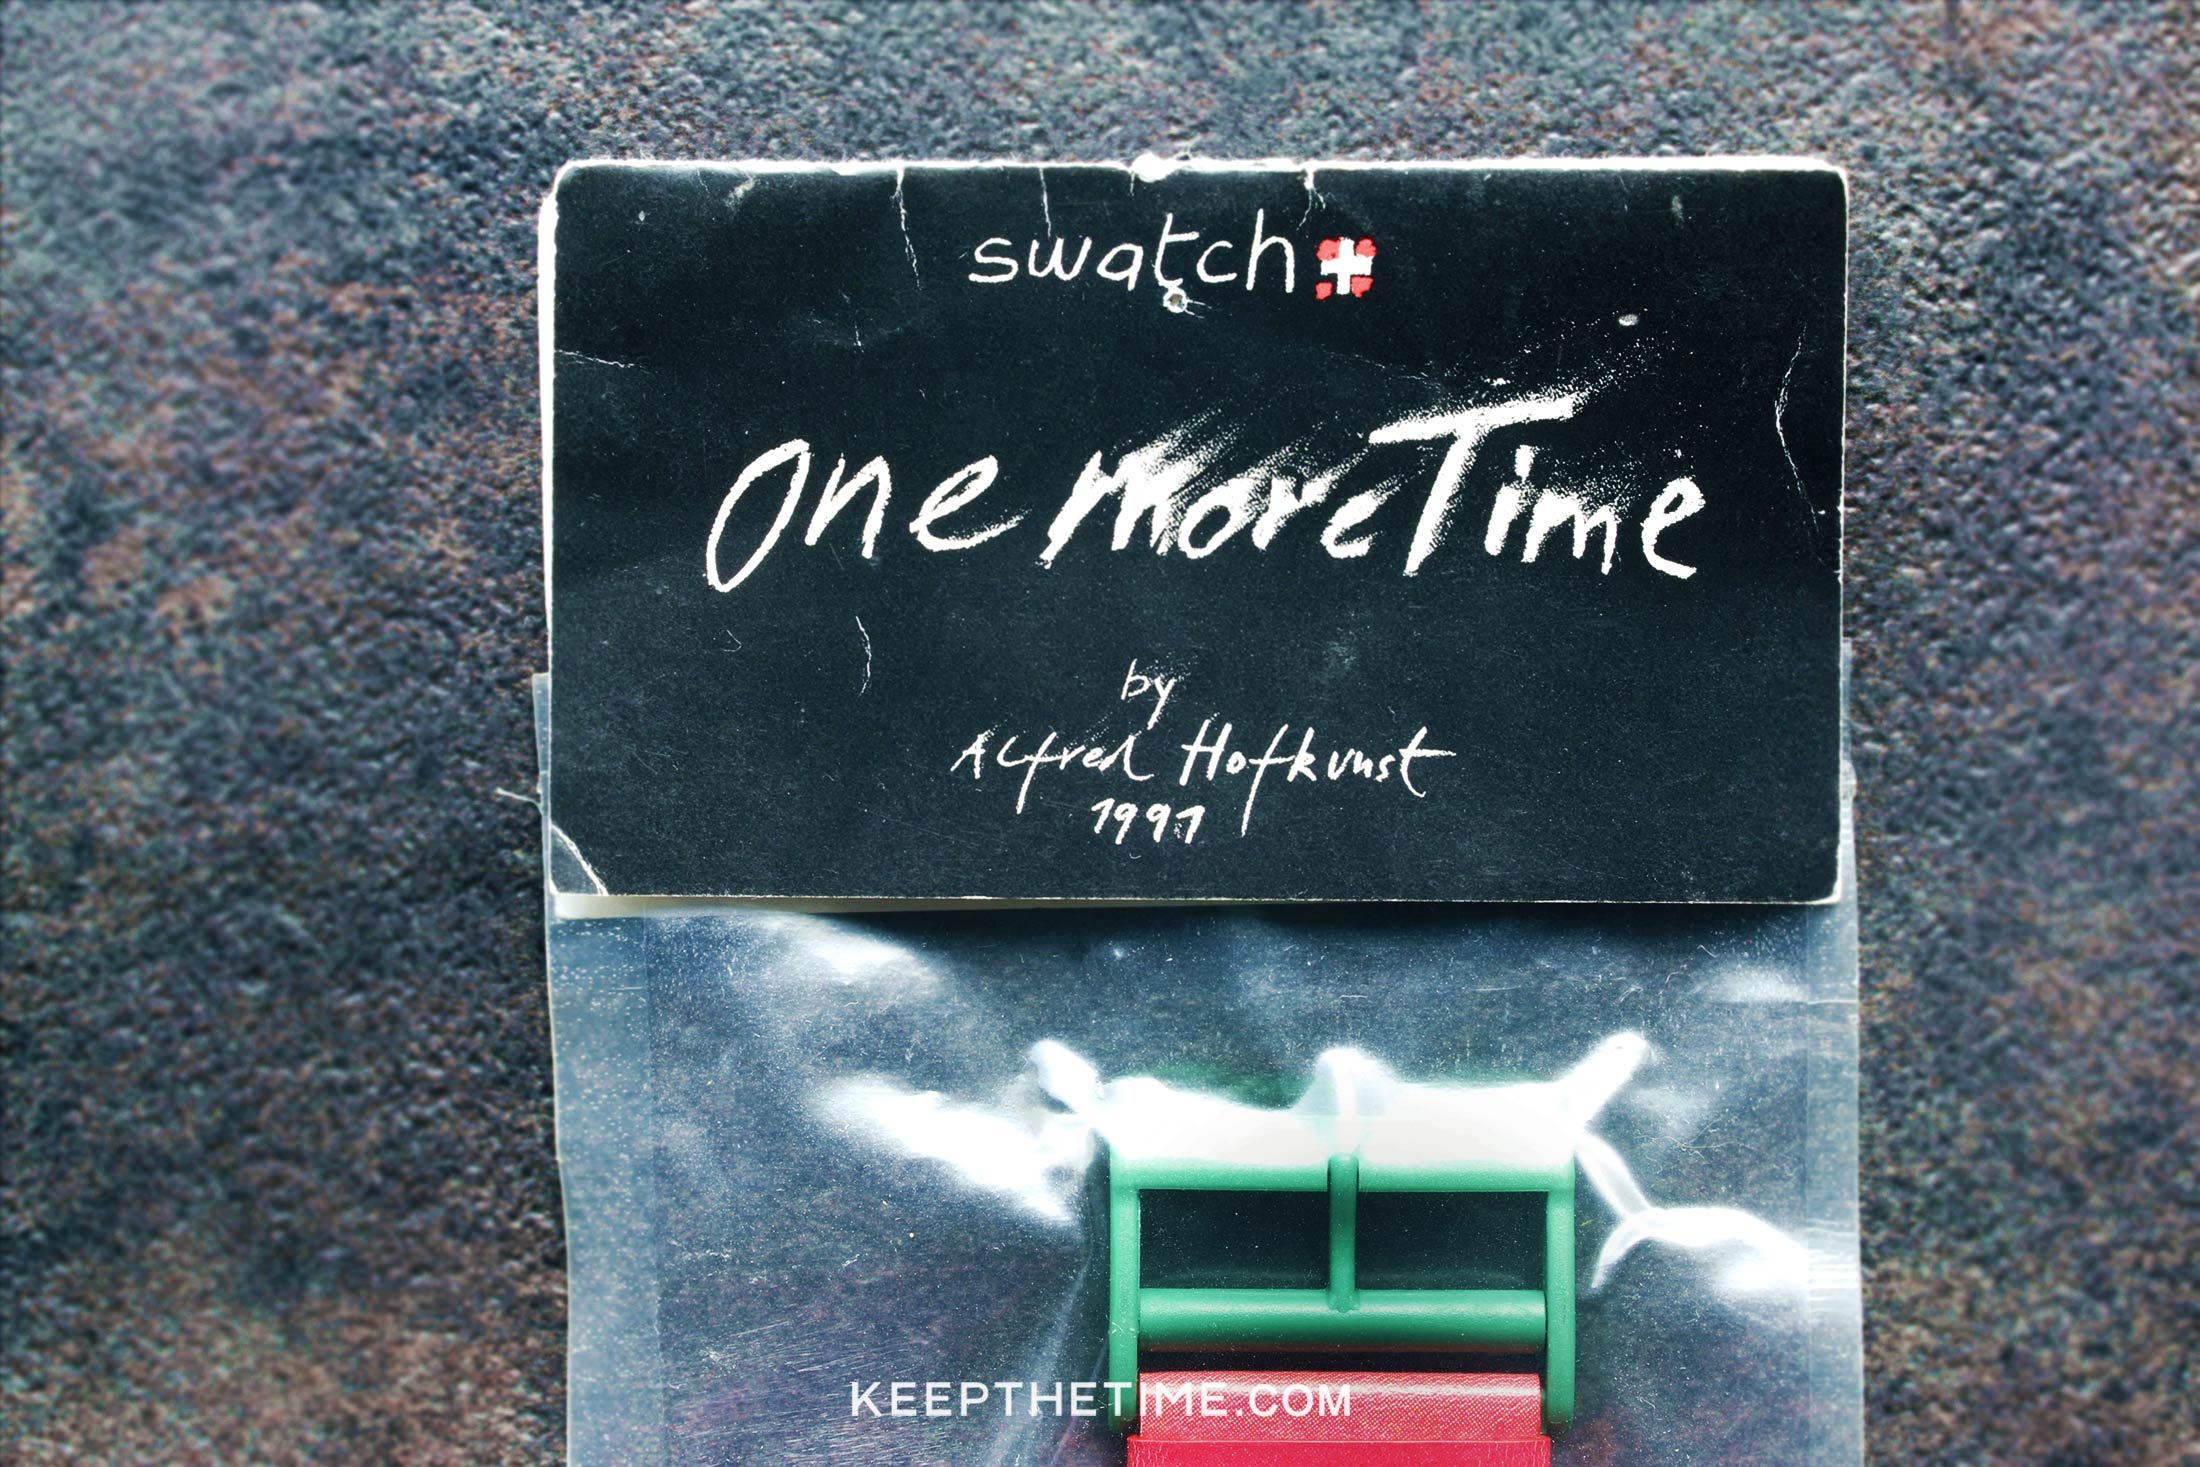 1991 Swatch Red Pepper by Alfred Hofkunst